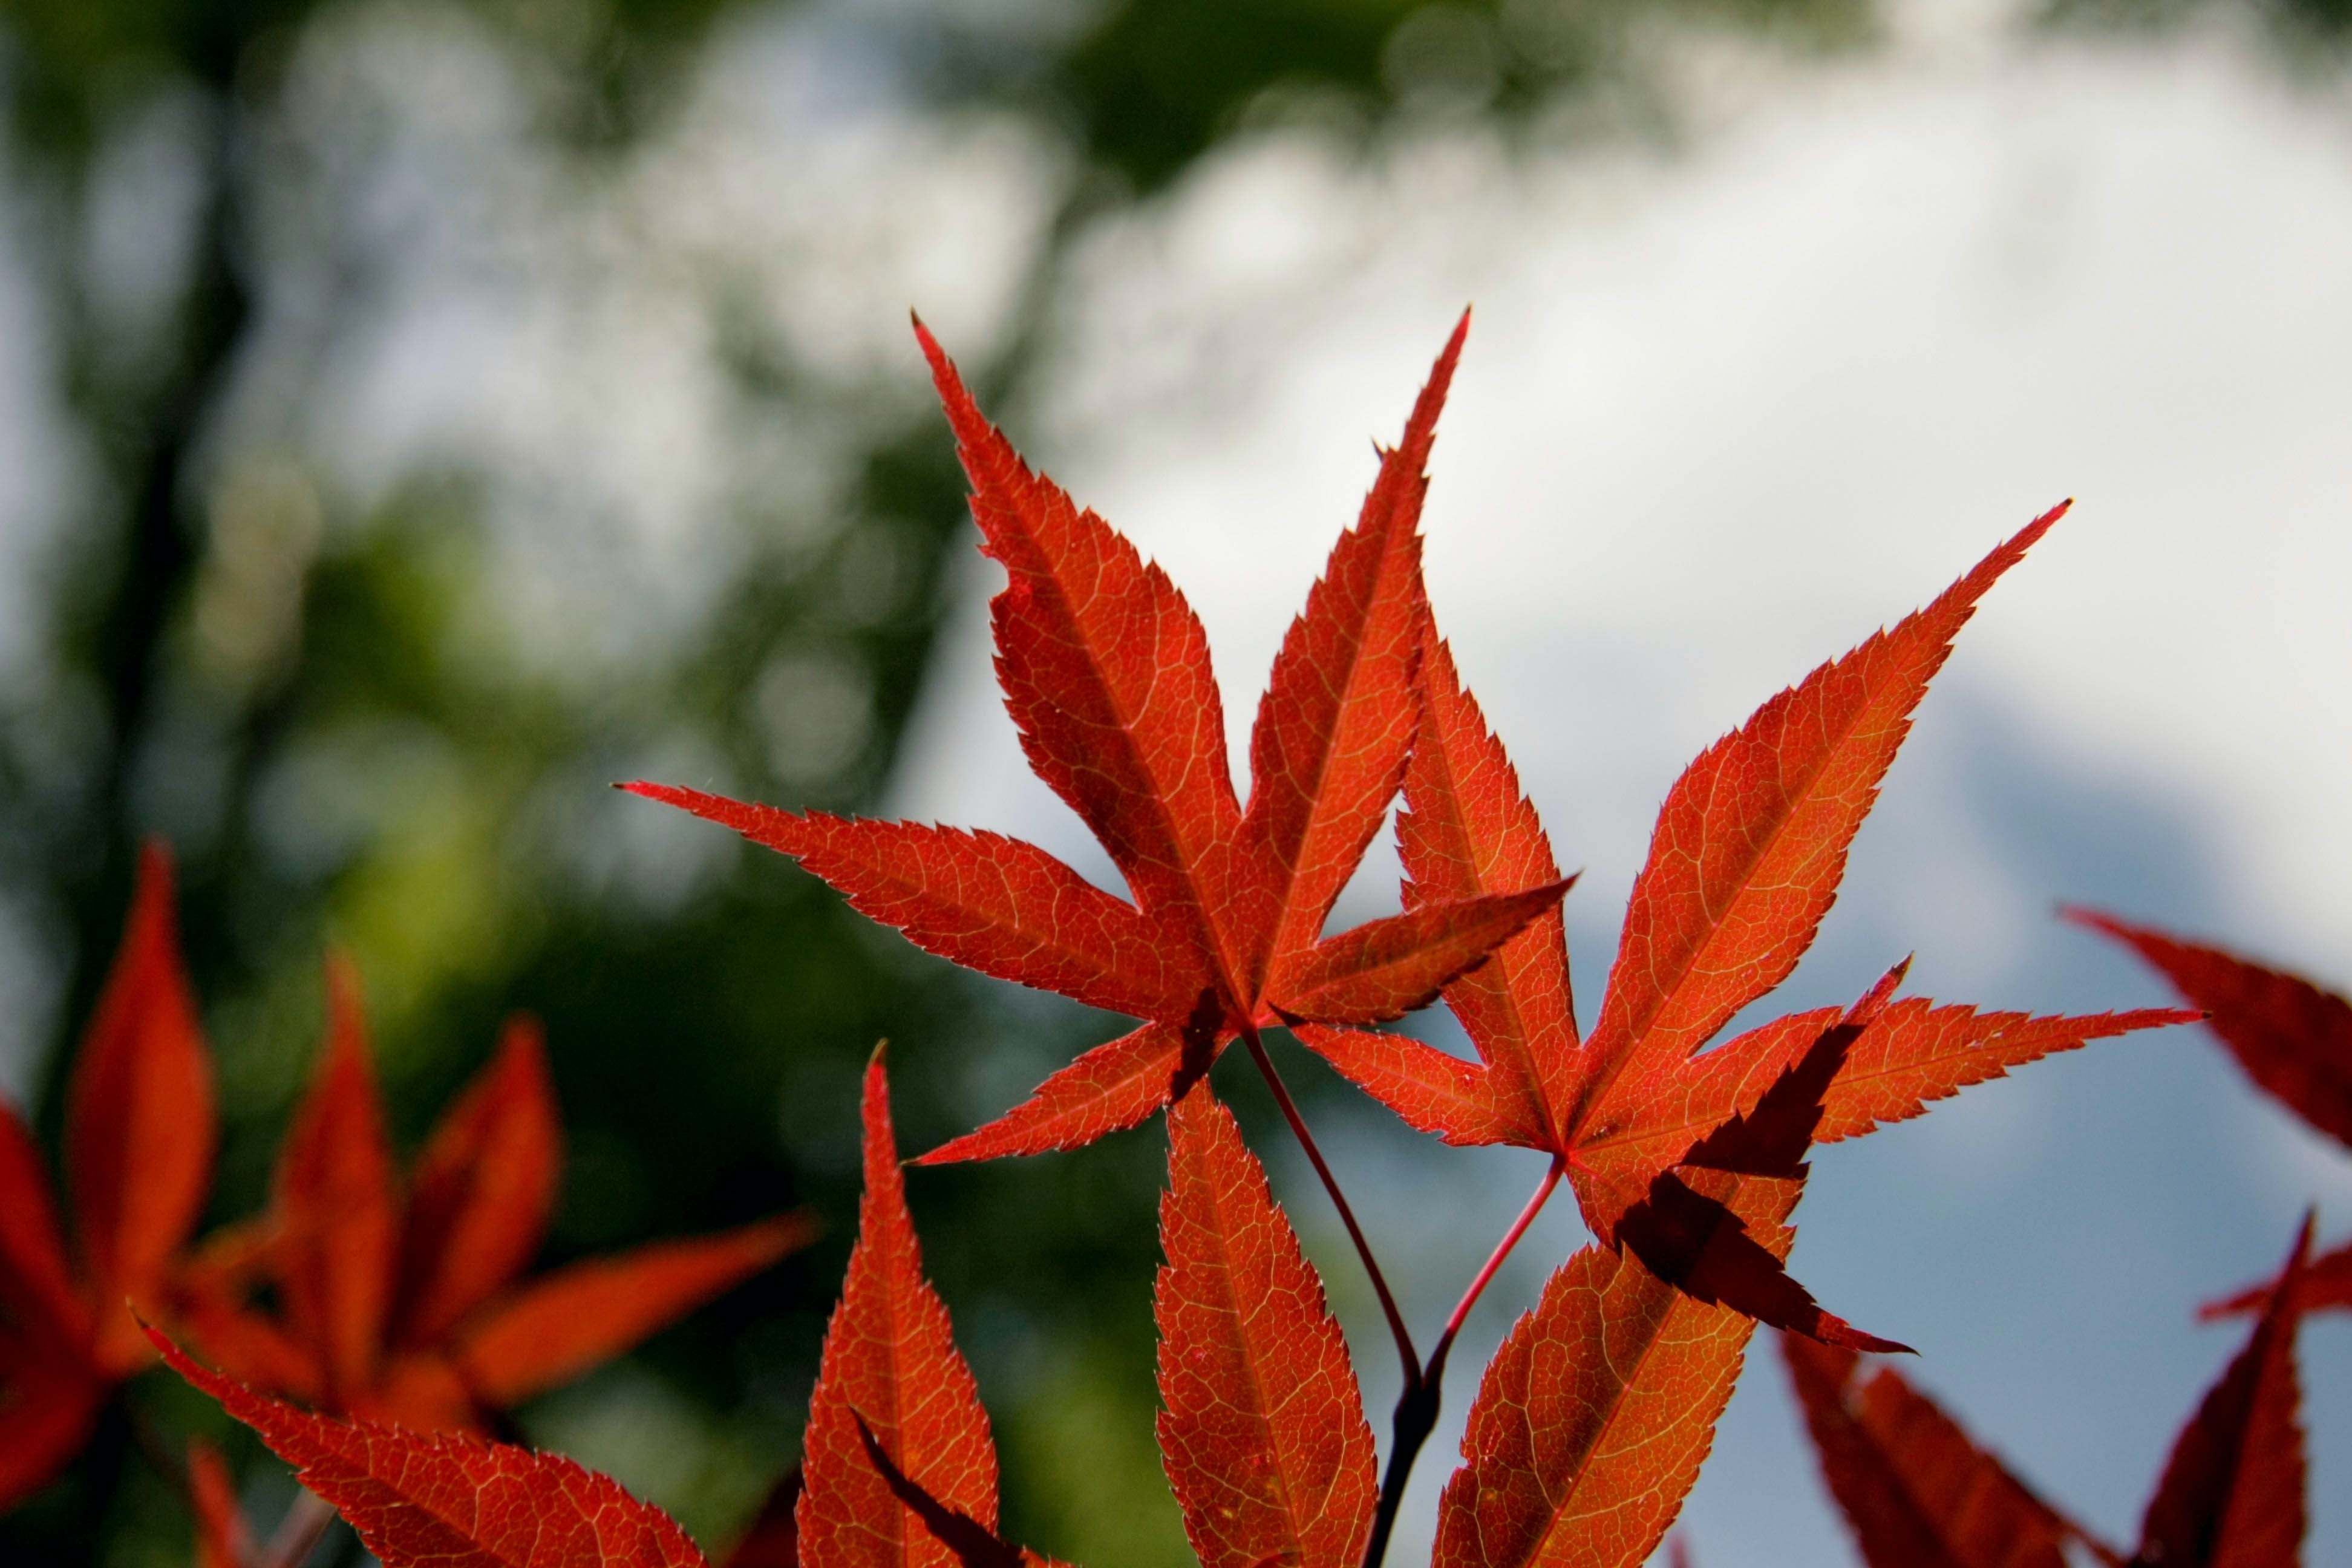 Red maple leaves in the fall